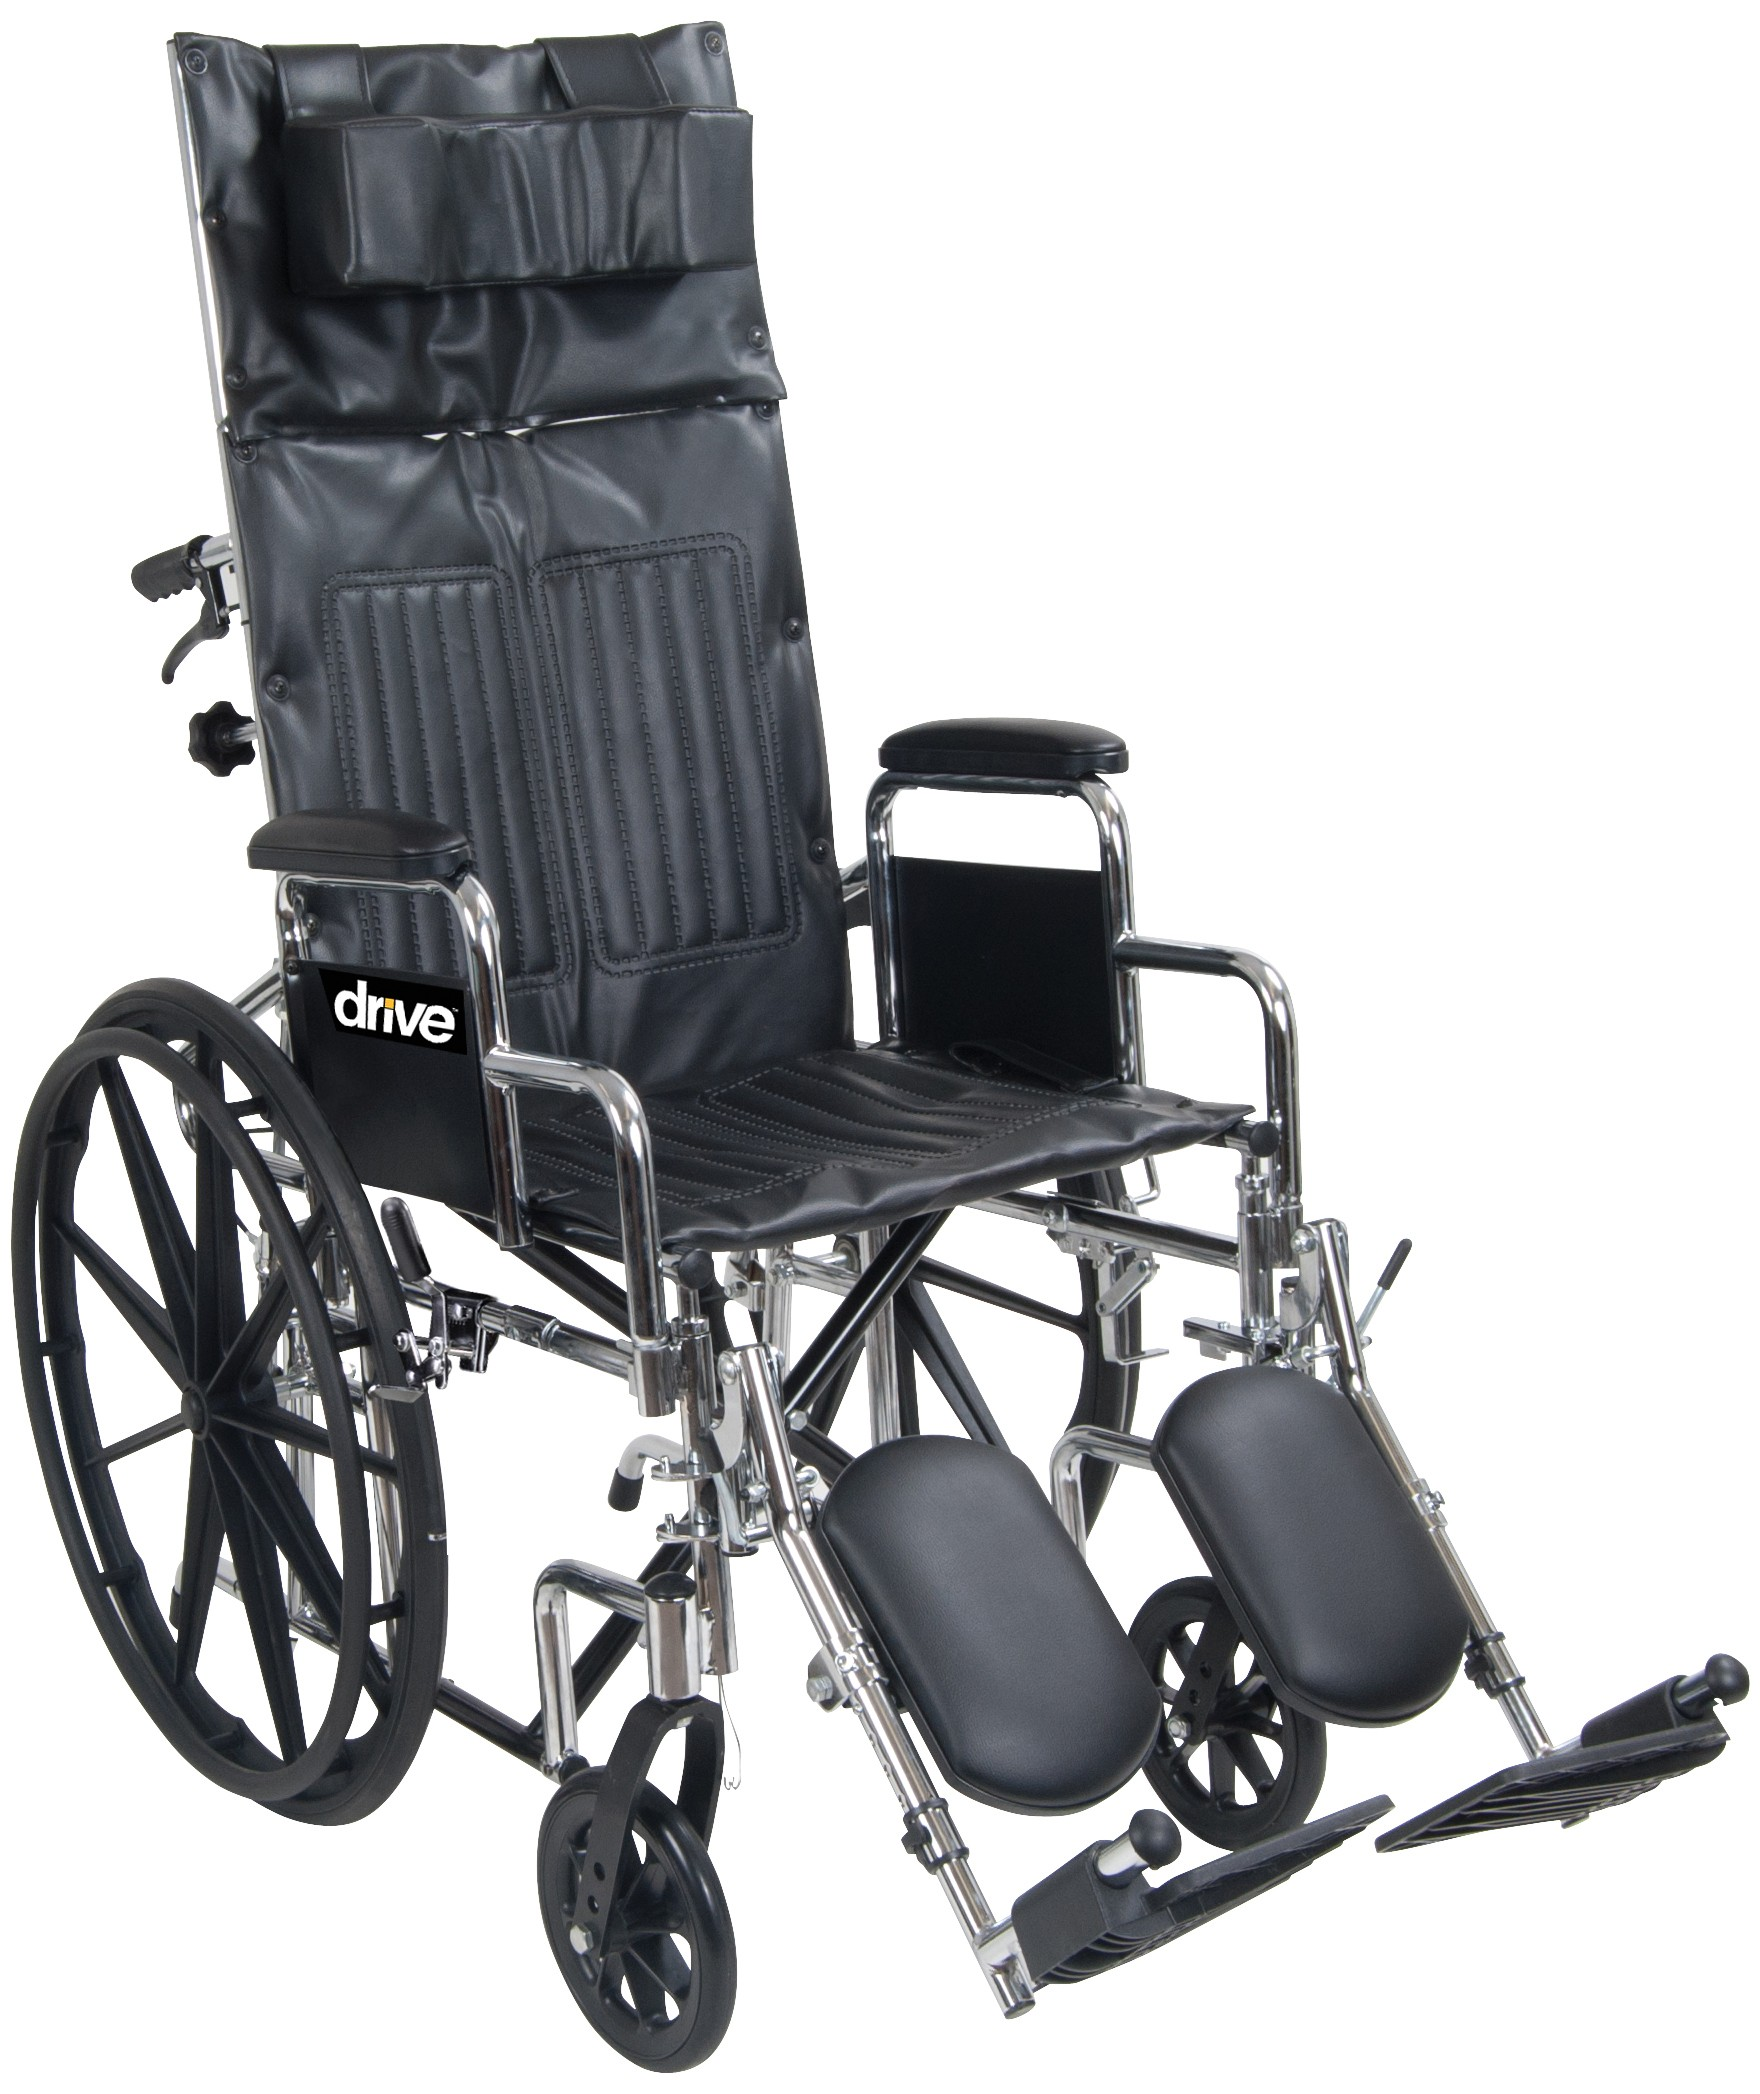 Chrome Sport Full-Reclining Wheelchair   0 0 0 0 Chrome Sport Full-Reclining Wheelchair